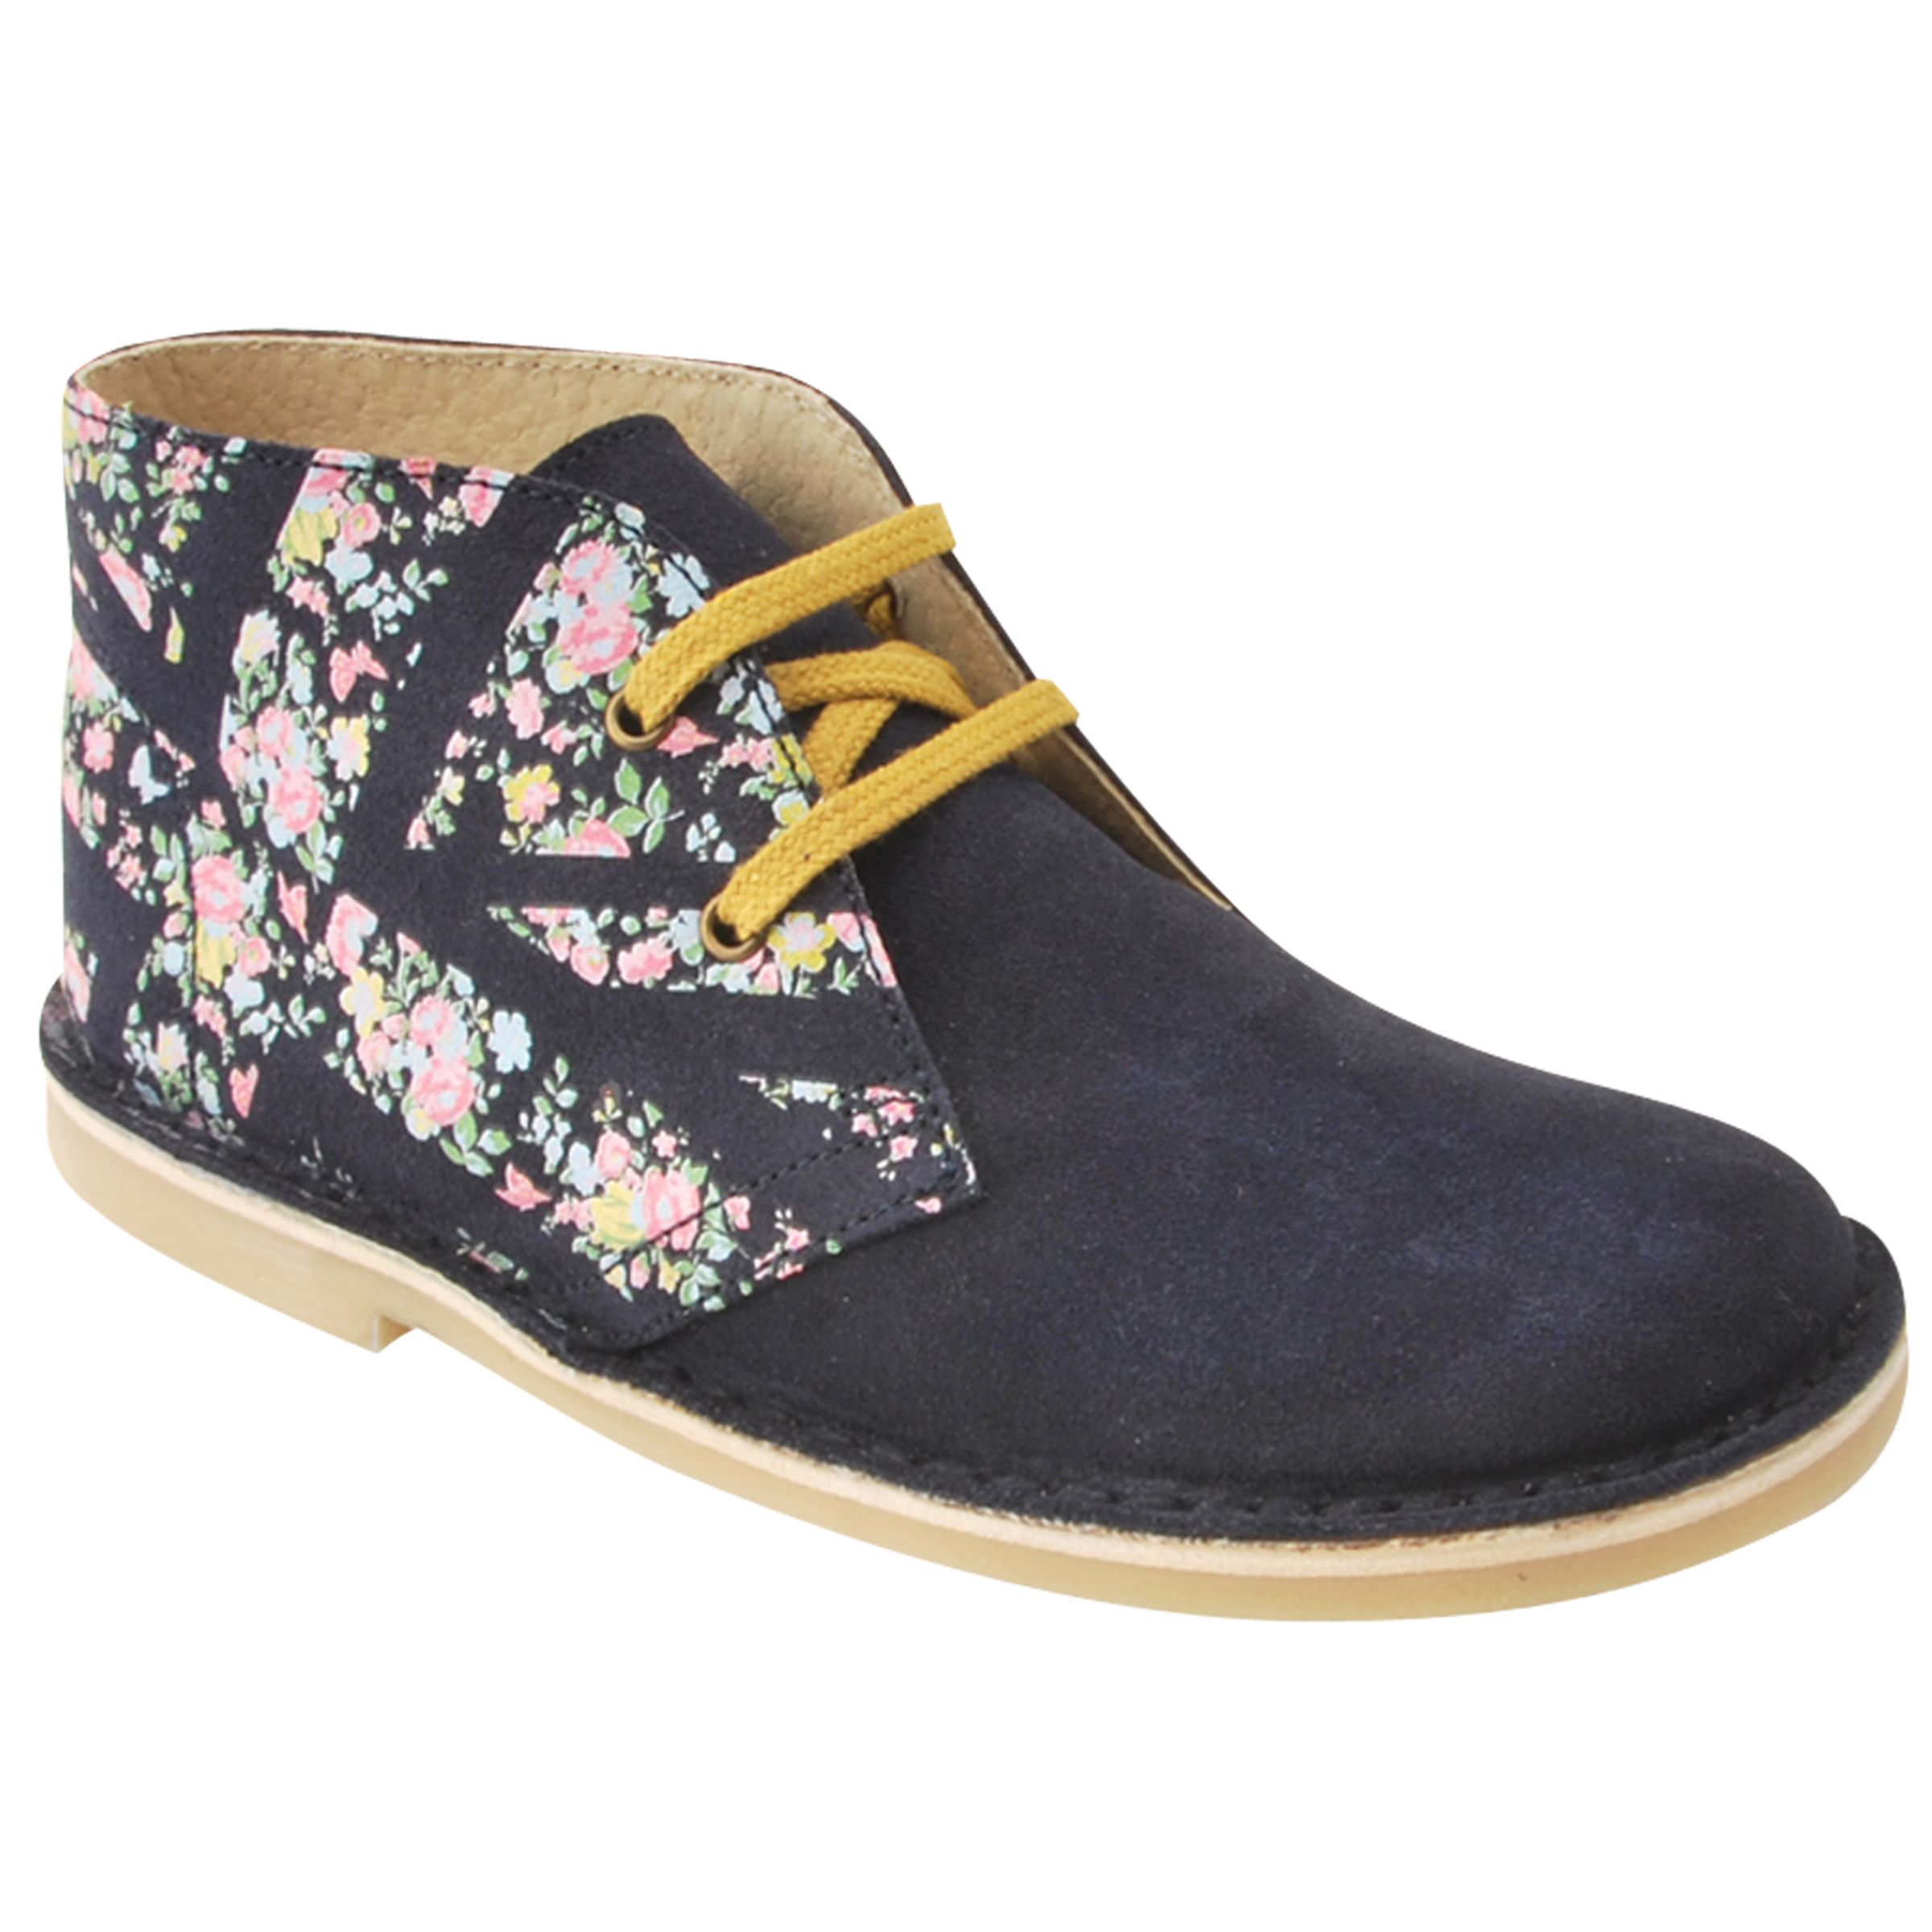 Start-Rite Start-rite Children's Colorado Leather Floral Lace Boots, Navy/Floral